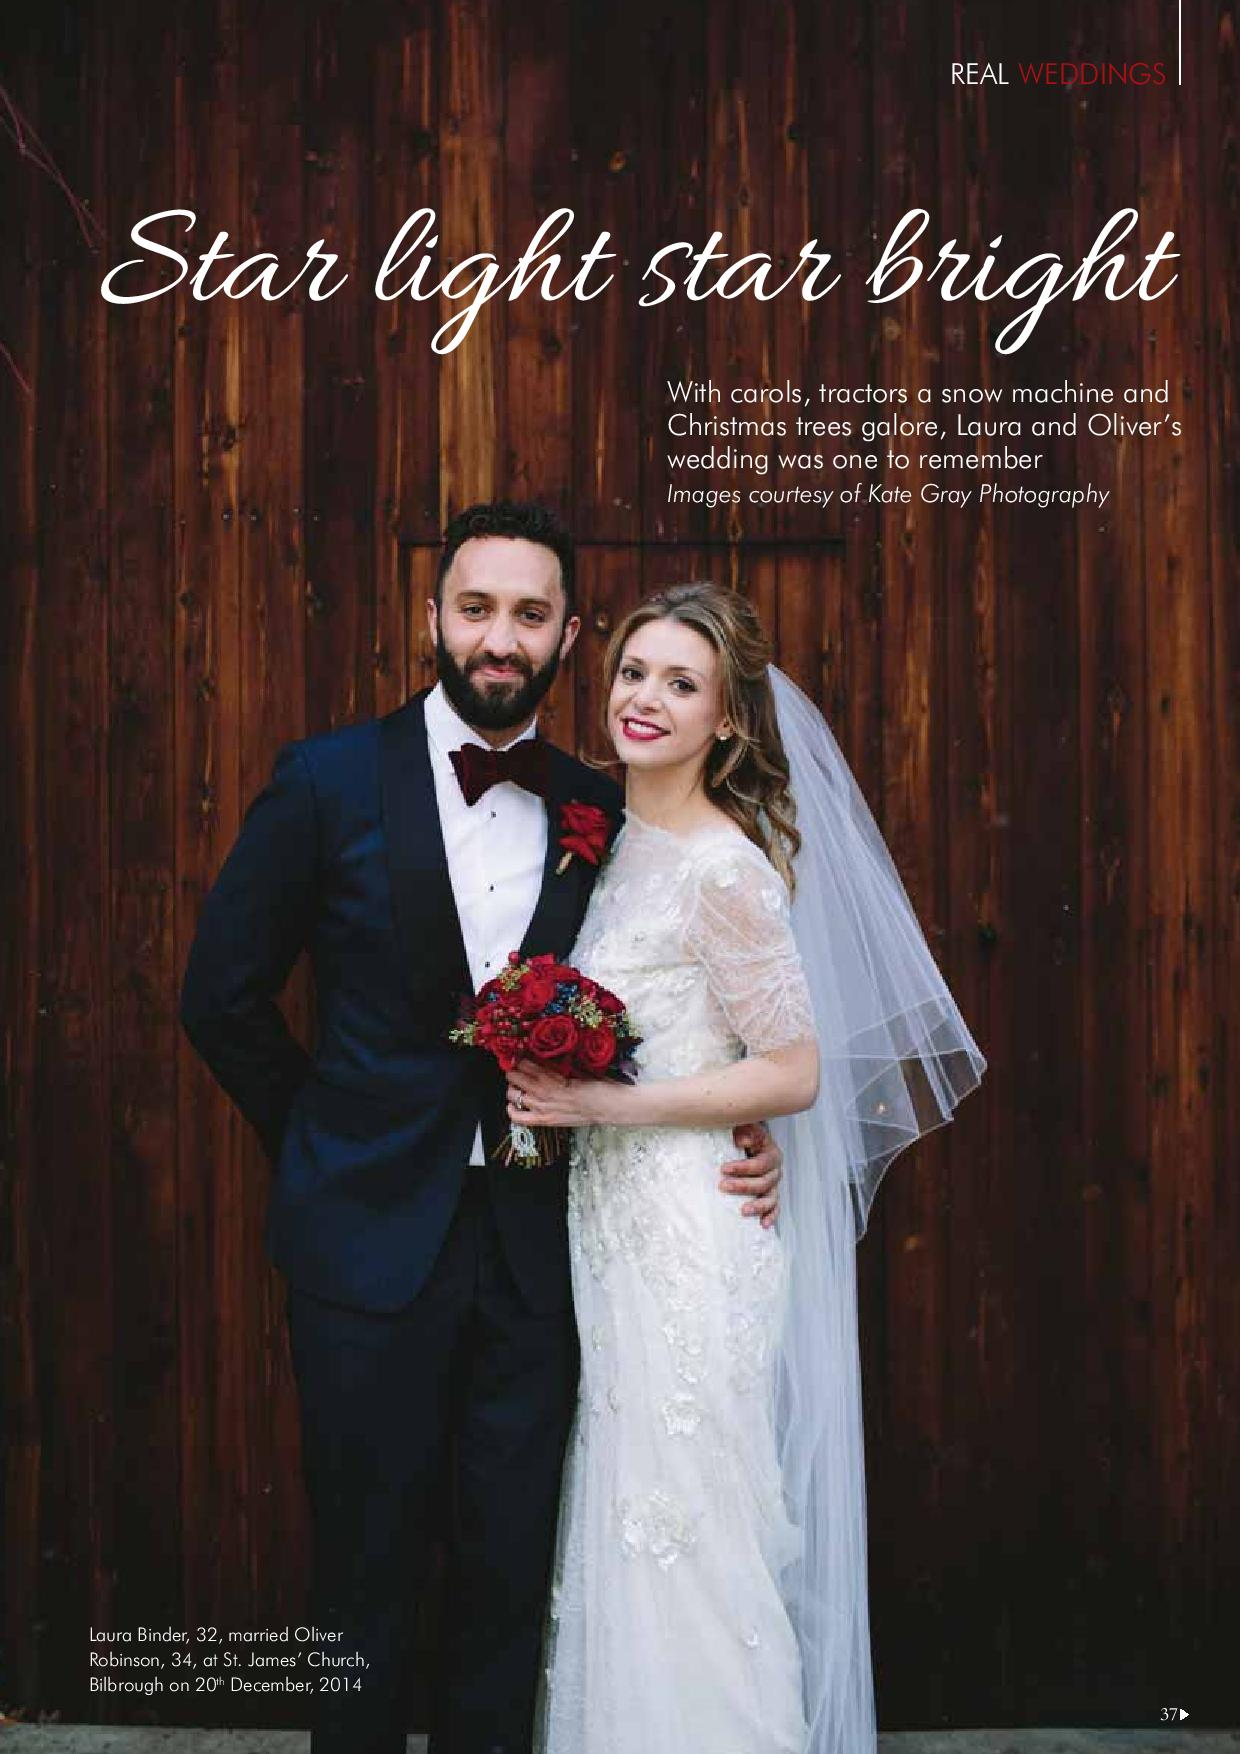 The Normans Weddings in Your Yorkshire Wedding magazine 2.jpg